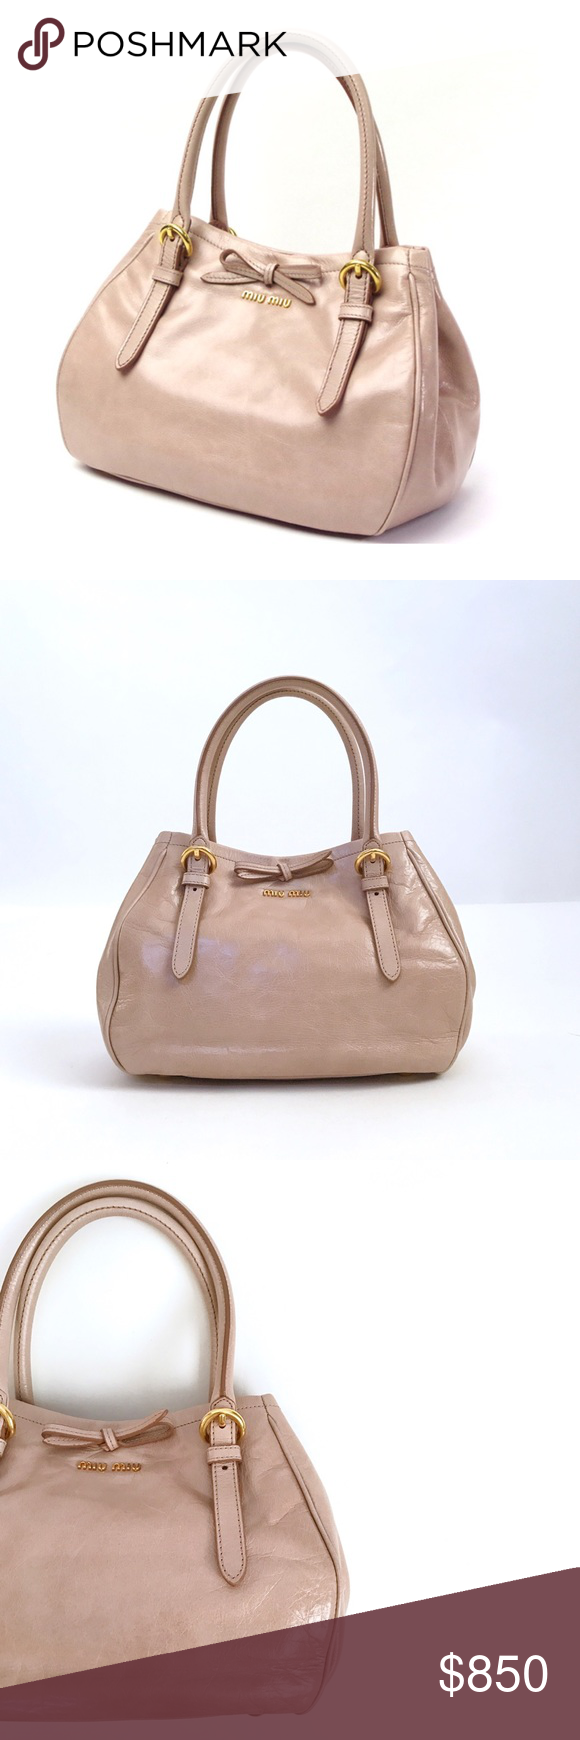 Miu Miu Vitello Shine Miu Miu Vitello Shine Satchel Adorable little bag  from Miu Miu ... adorned with a cute bow in the front and the beautiful  blush nude ... 0673f105e0